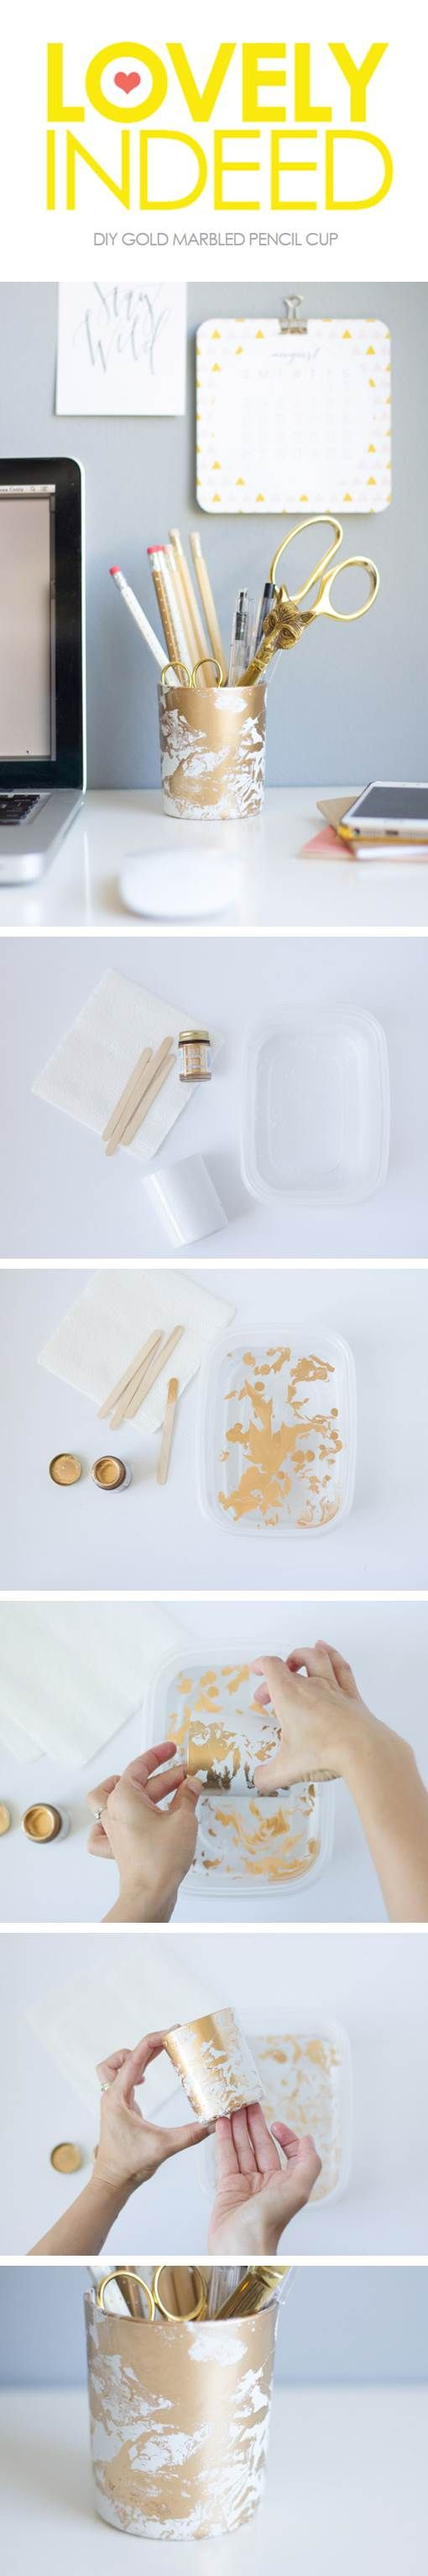 Get Lovely Indeed's #DIY for this marble-inspired pencil cup made with Liquid Gilding from #marthastewartcrafts